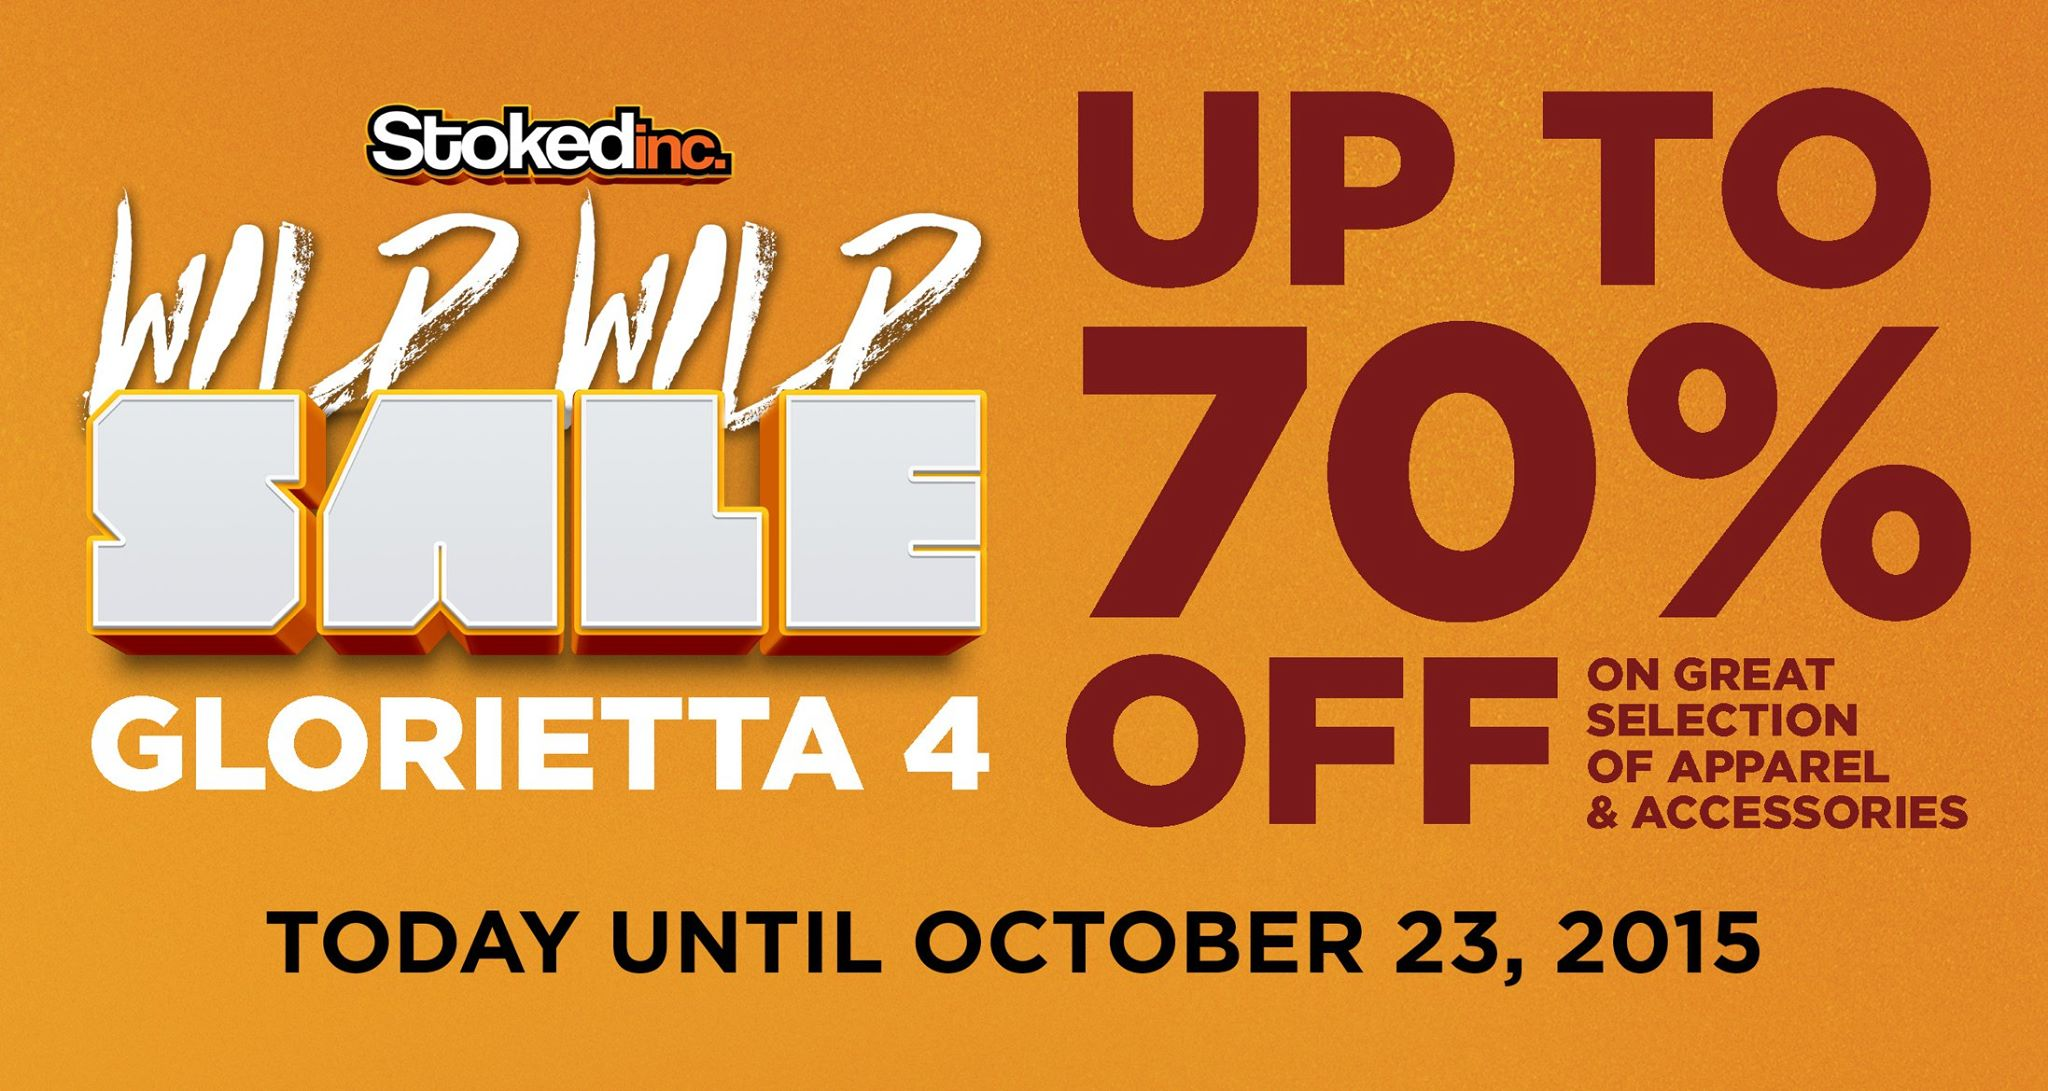 Stokedinc. Wild Wild Sale @ Glorietta September - October 2015